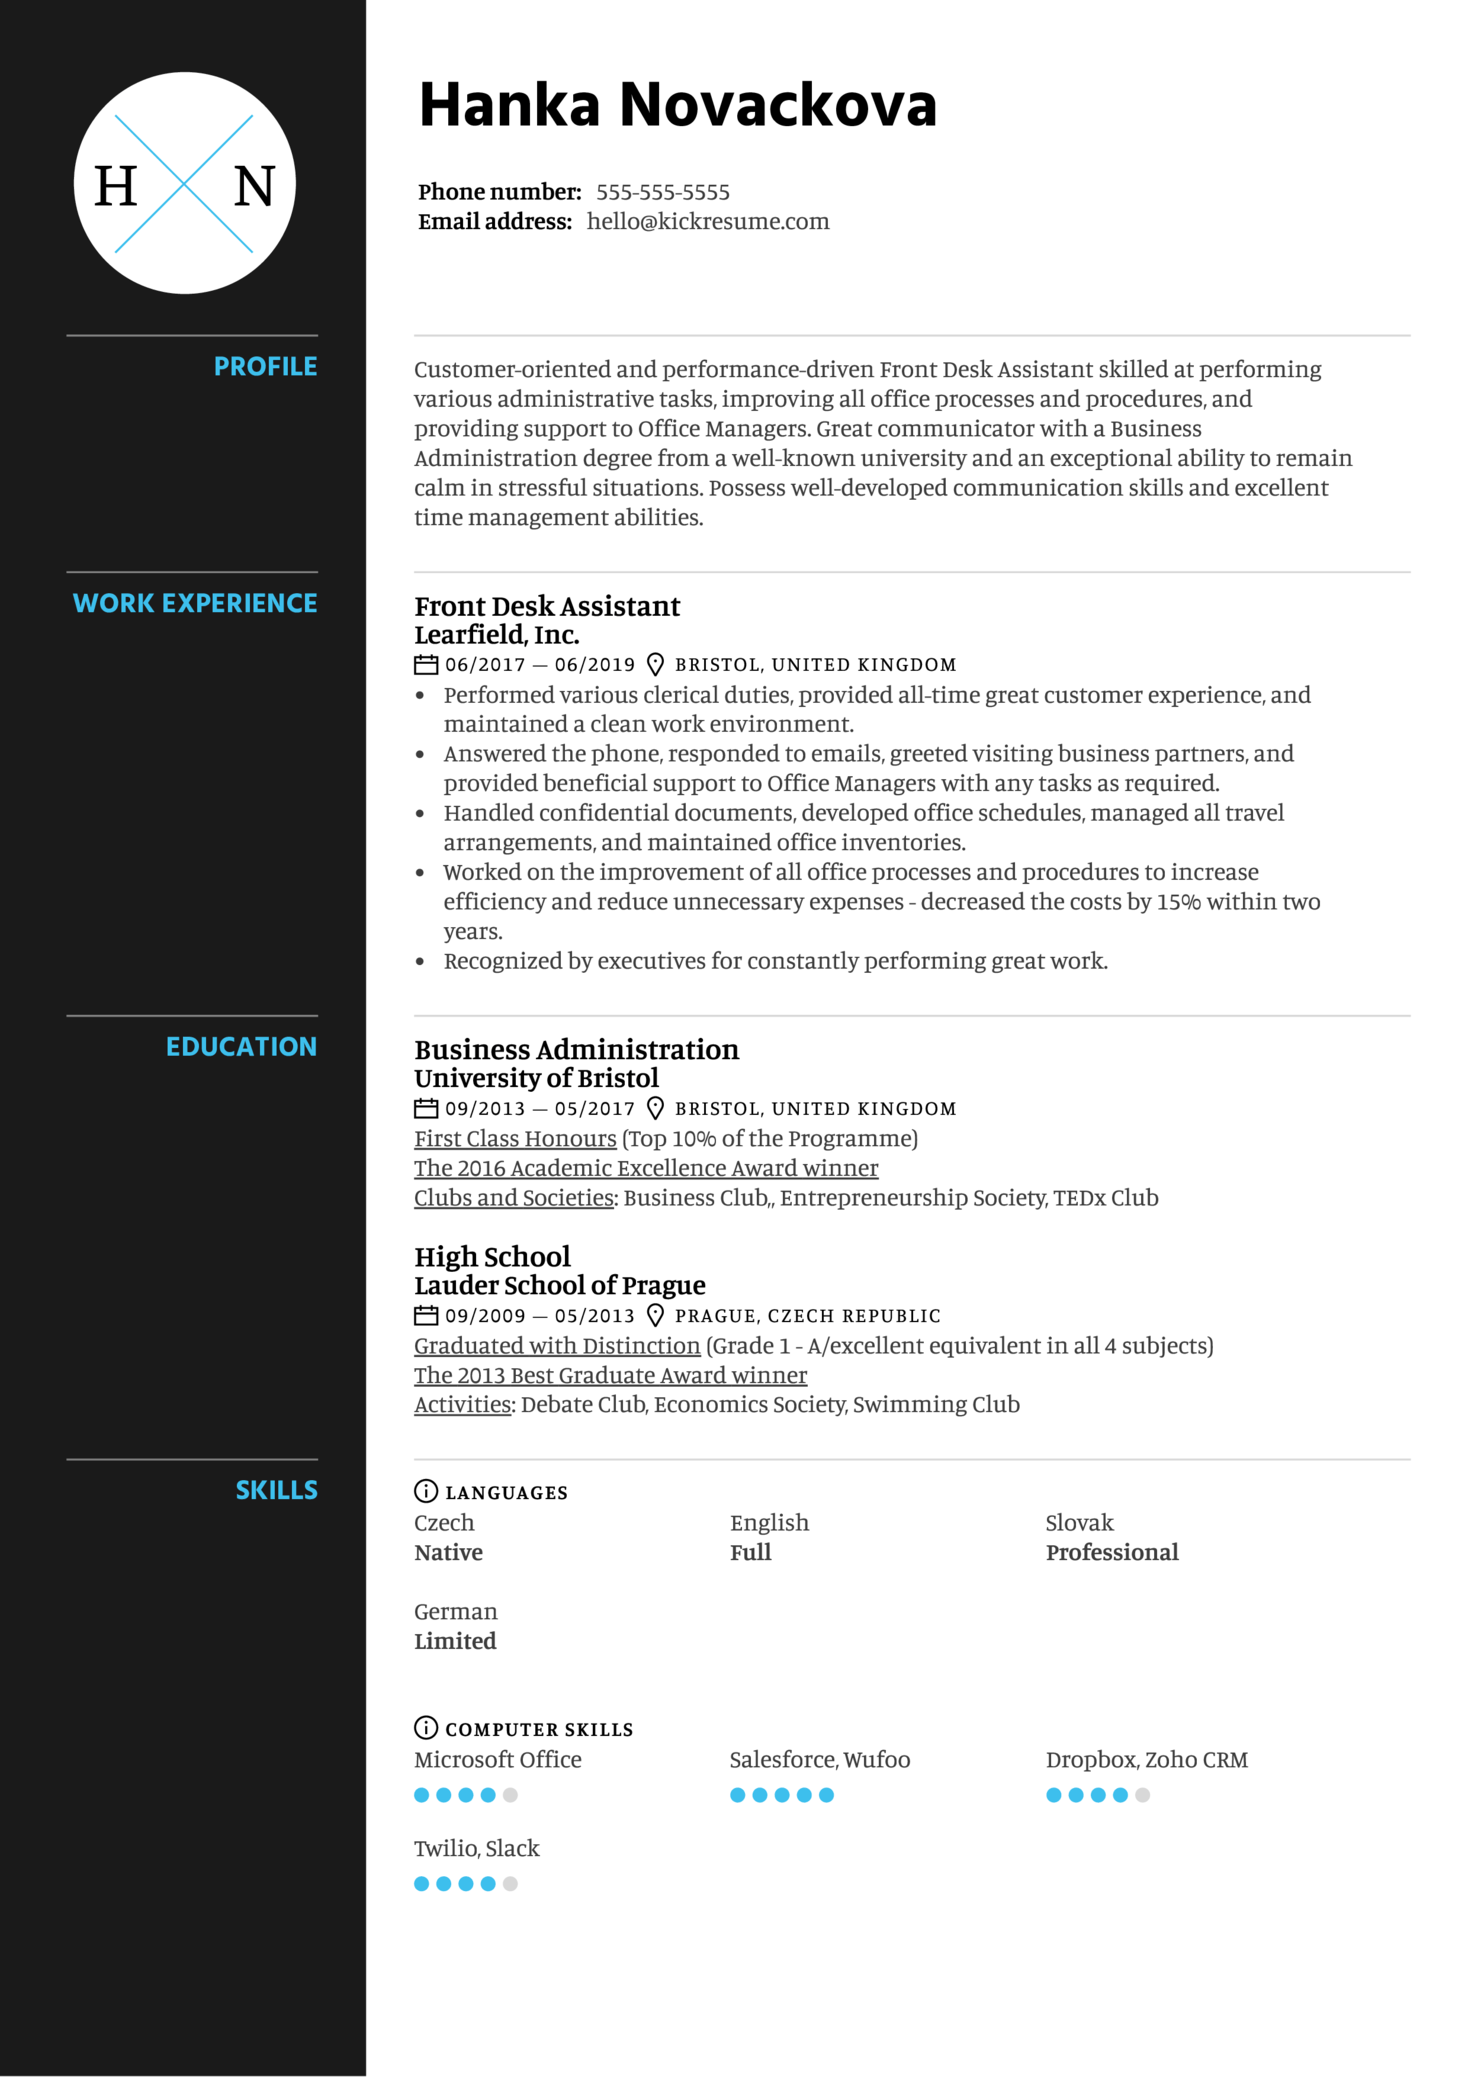 Front Desk Assistant Resume Example